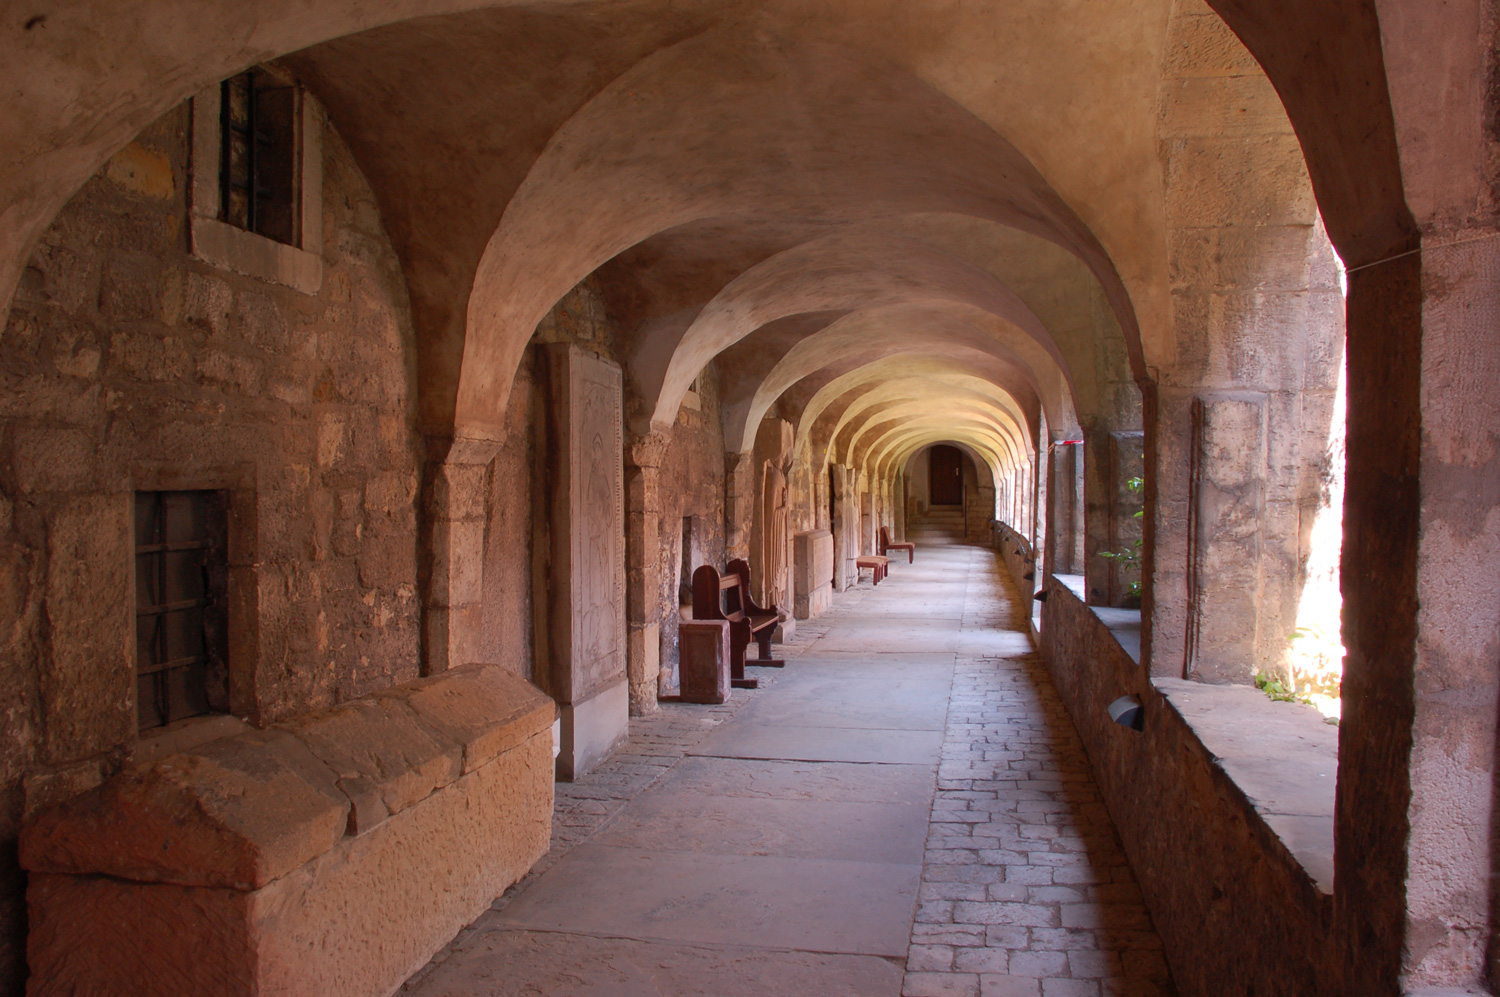 The Hildesheim Cathedral Cloister